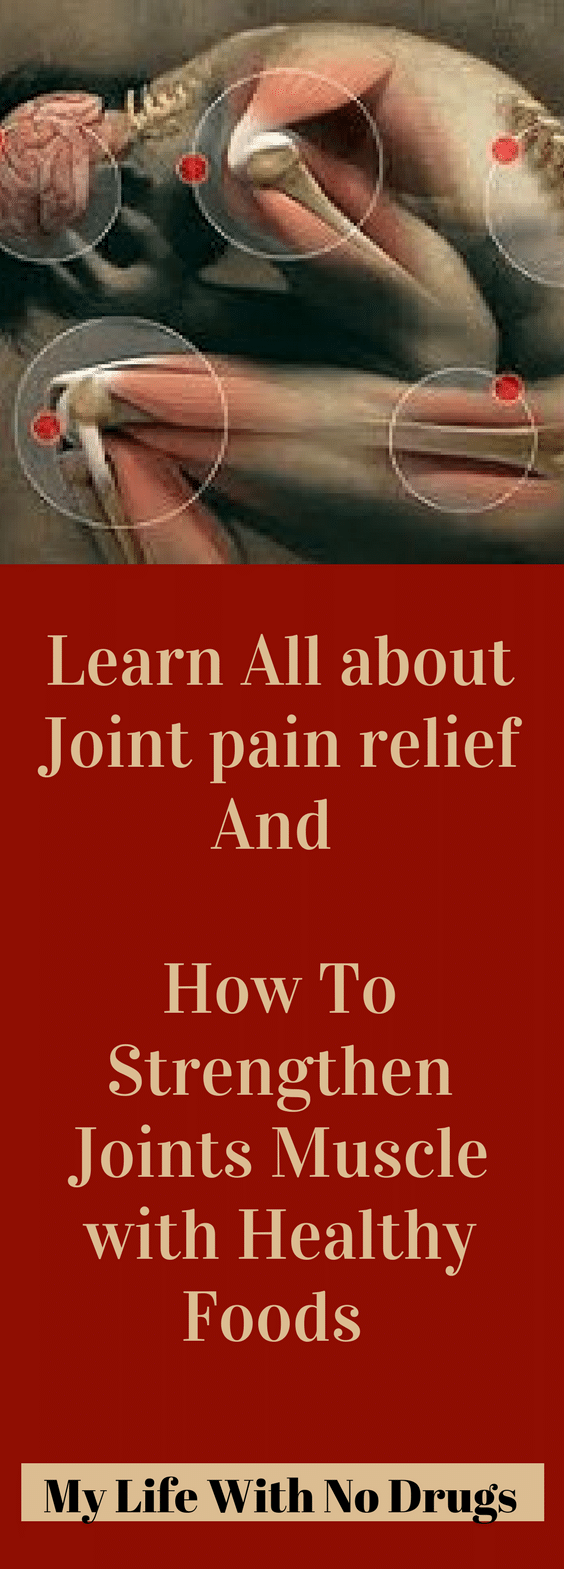 Learn All about joint pain relief And How To Strengthen joints muscle with healthy food #joint #pain #relief #strengthtraining #strengthen #joints #muscle #healthyfood #food #healthyfood #muscle #pain #joints #painrelief #relief #jointpain #fitness #health #nutrition #healthylifestyle #healthyeating #healthy